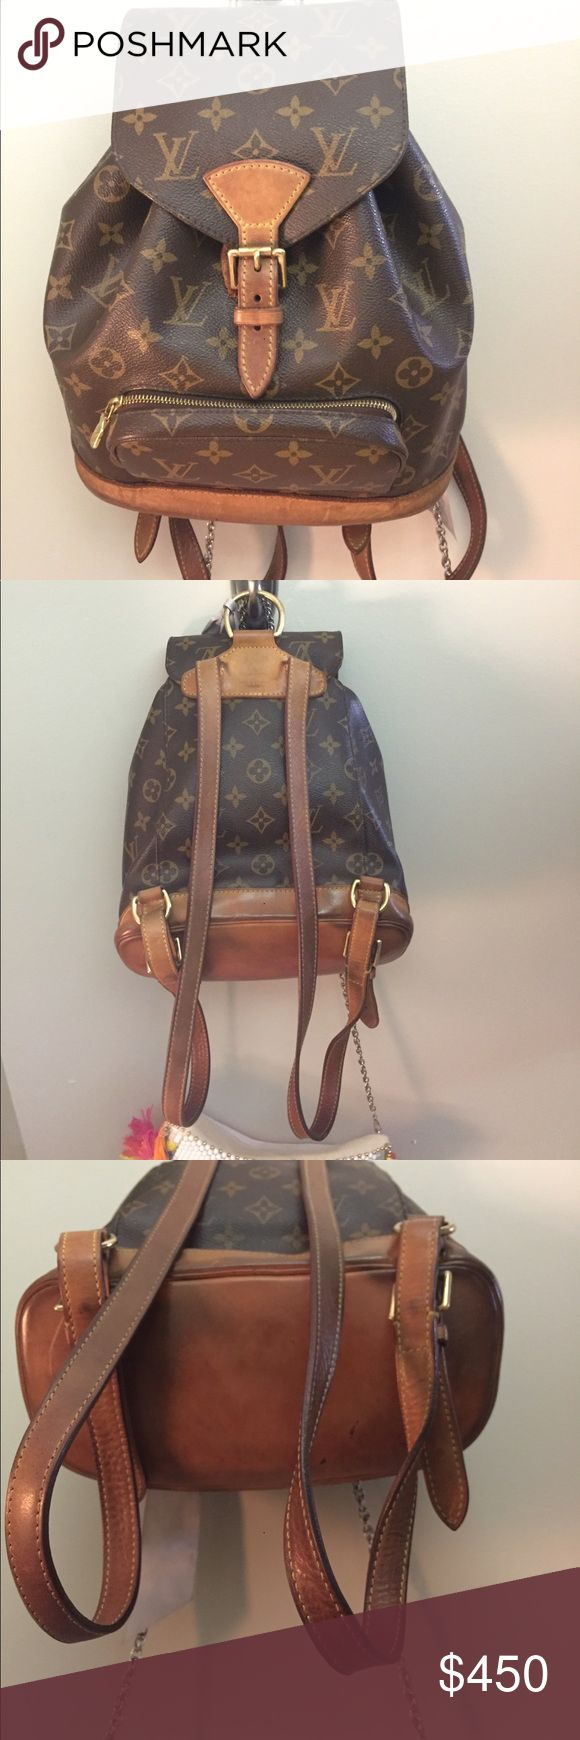 Louis Vuitton Women Montsouris Leather Backpack FAVE BAG 🚨 this bag has served me soooo well over the years! Can be worn out shopping, to school, to a festival, basically anywhere. You can see the wear on the leather, but this vintage piece is a real steal ✨ hope someone will love this bag as much as I do Louis Vuitton Bags Backpacks